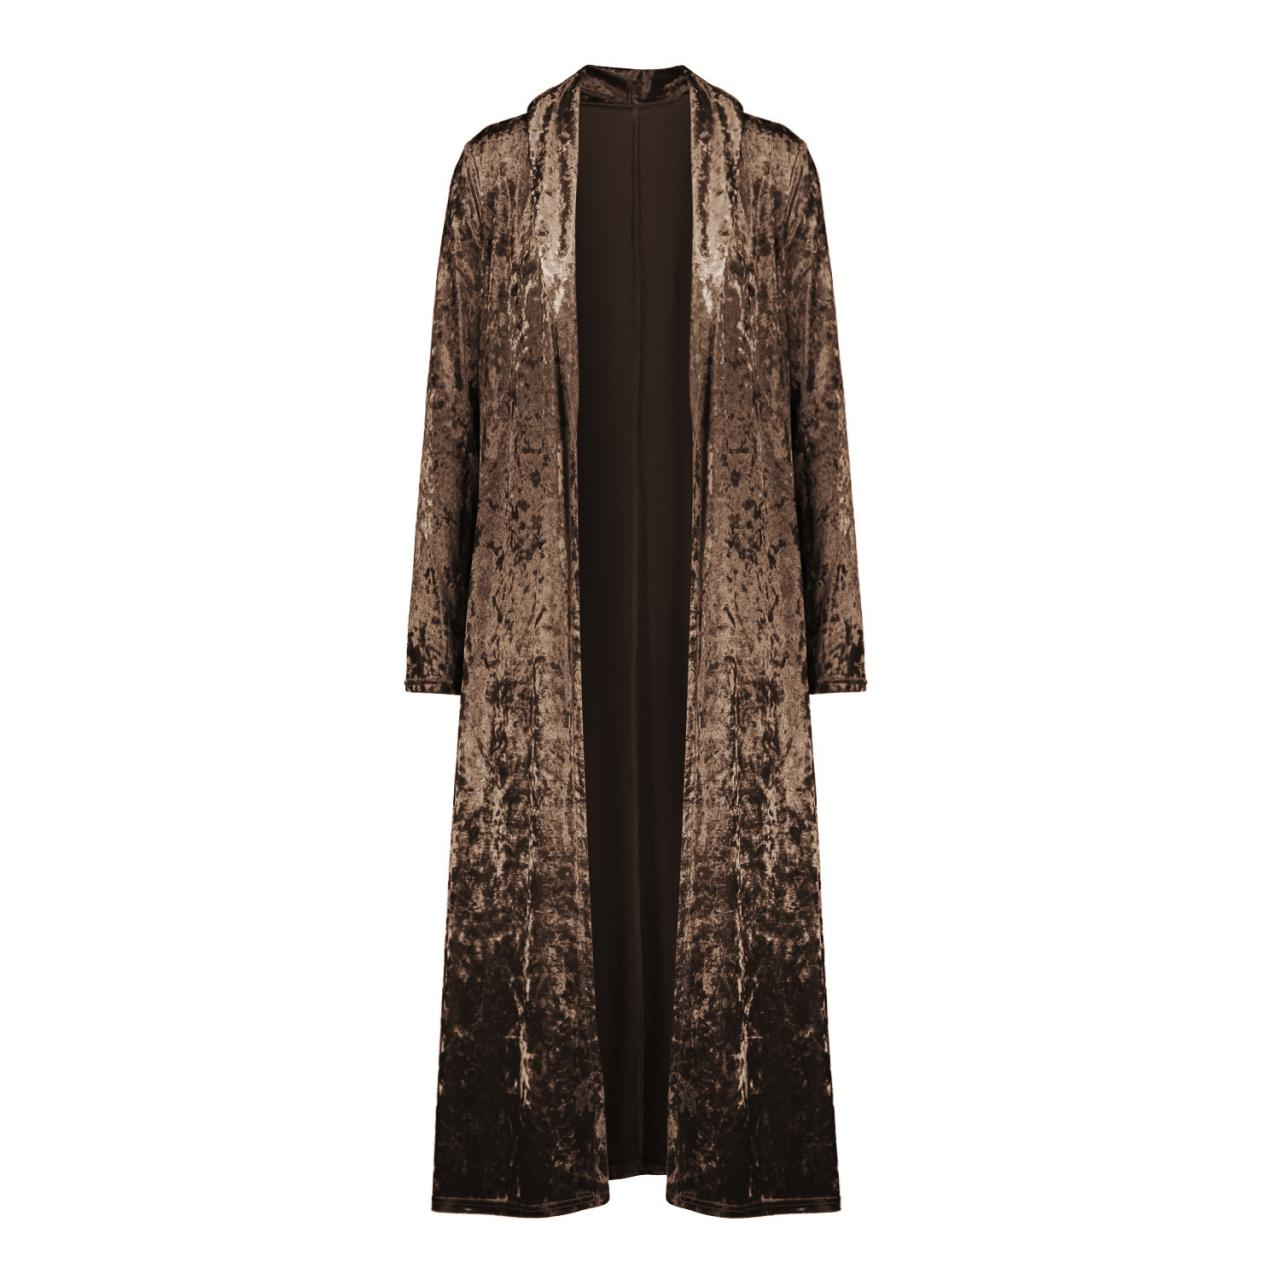 Women Velvet Trench Coat Autumn Slim Fit Long Sleeve Open Stitch Casual Long Maxi Cardigan Jackets coffee